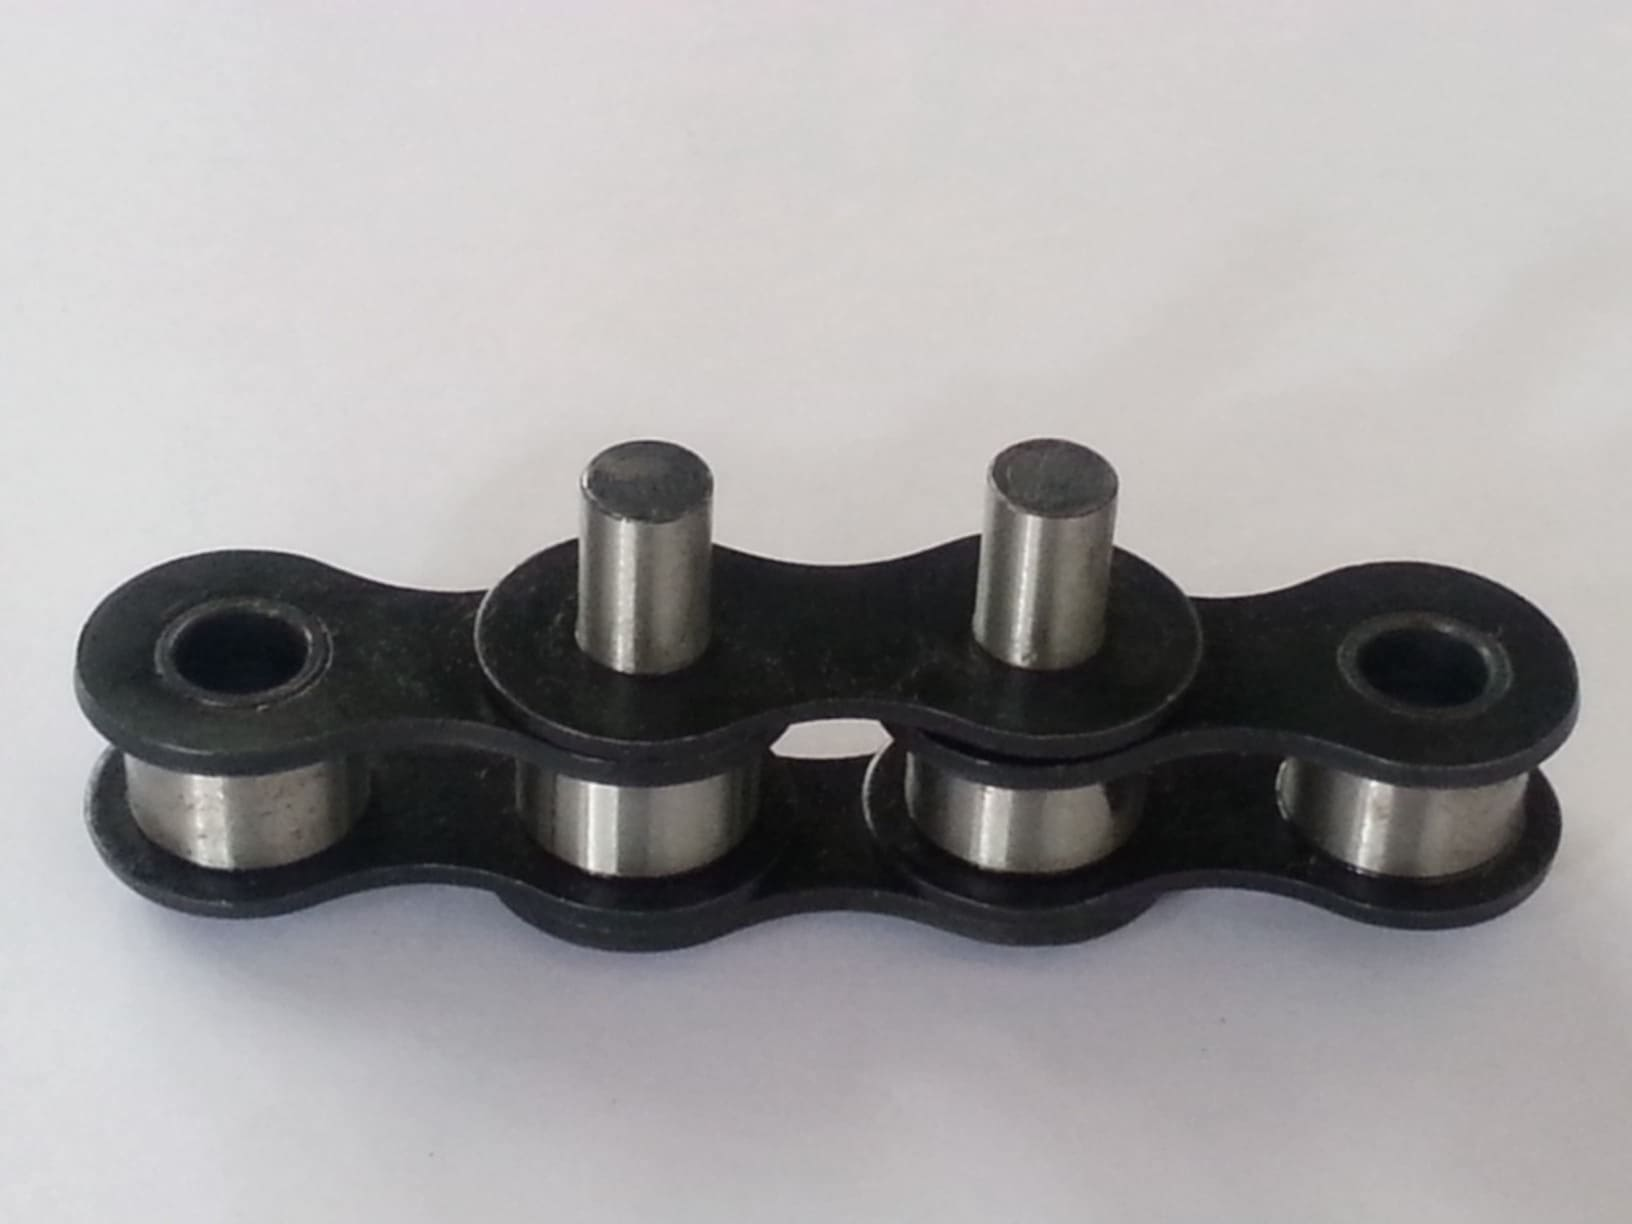 Kalp Engineering Industrial Chains Product Photos - KalpChain in